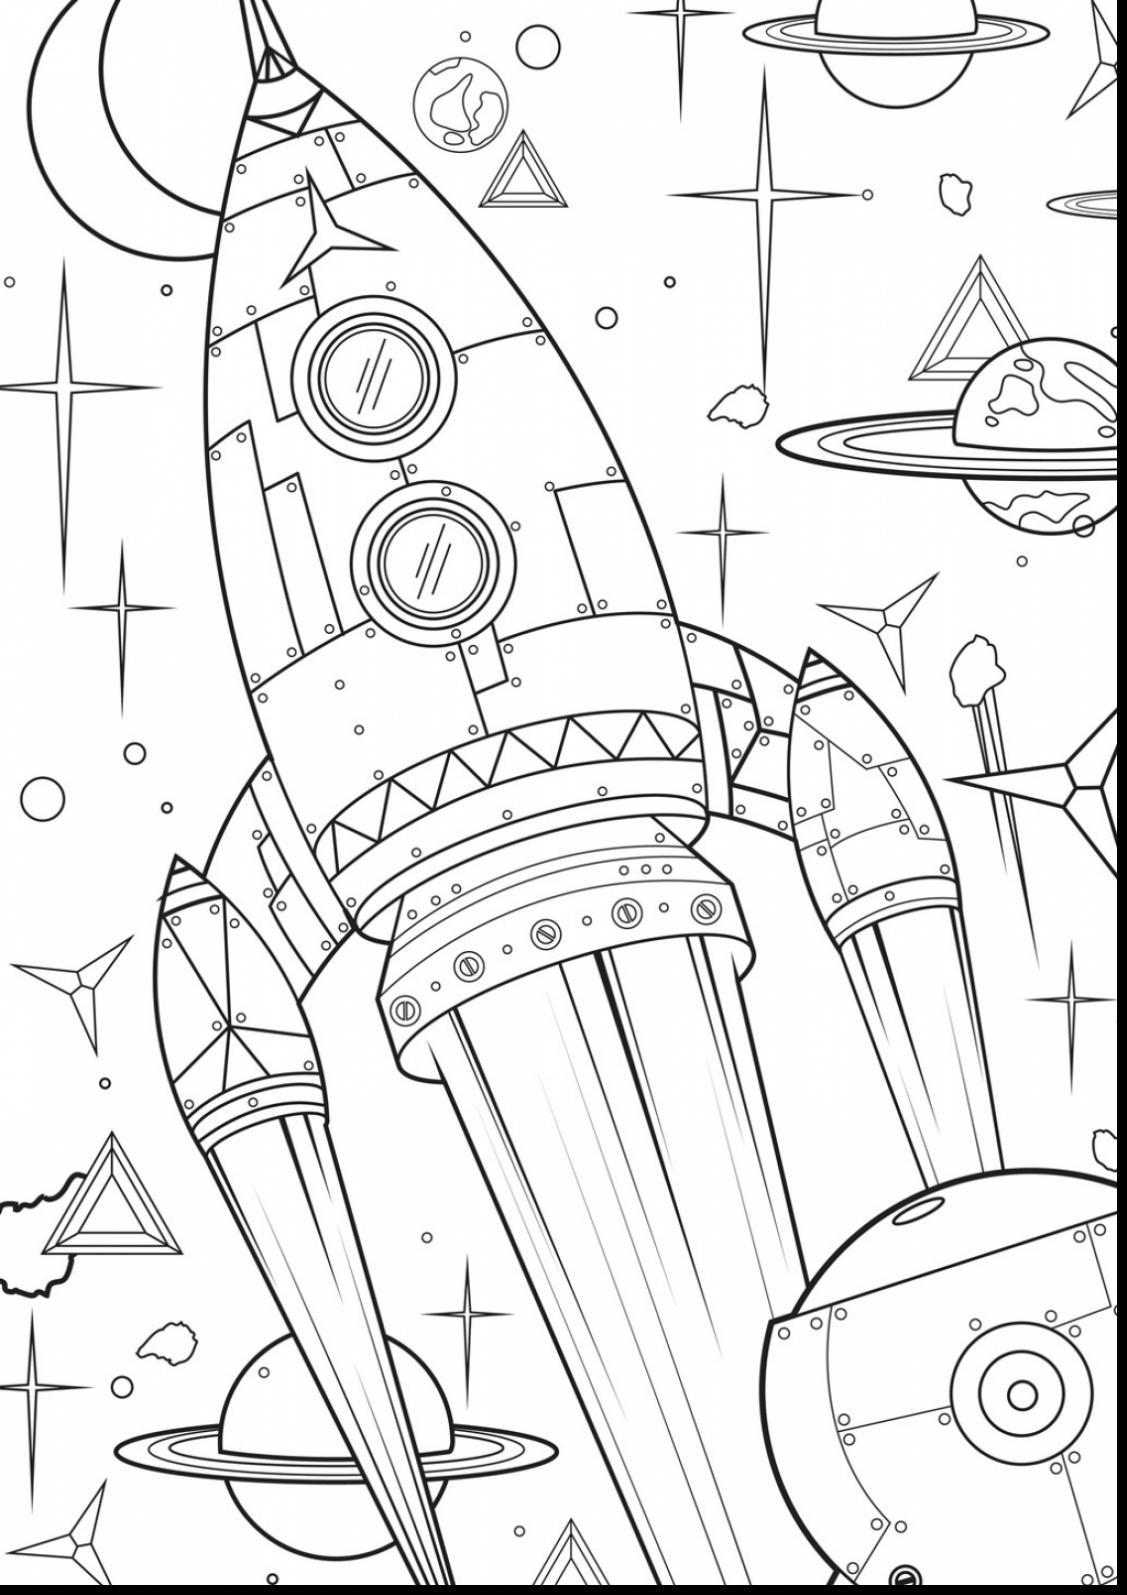 free printable coloring pages for older kids hard coloring pages for older kids at getcoloringscom pages older for printable free coloring kids